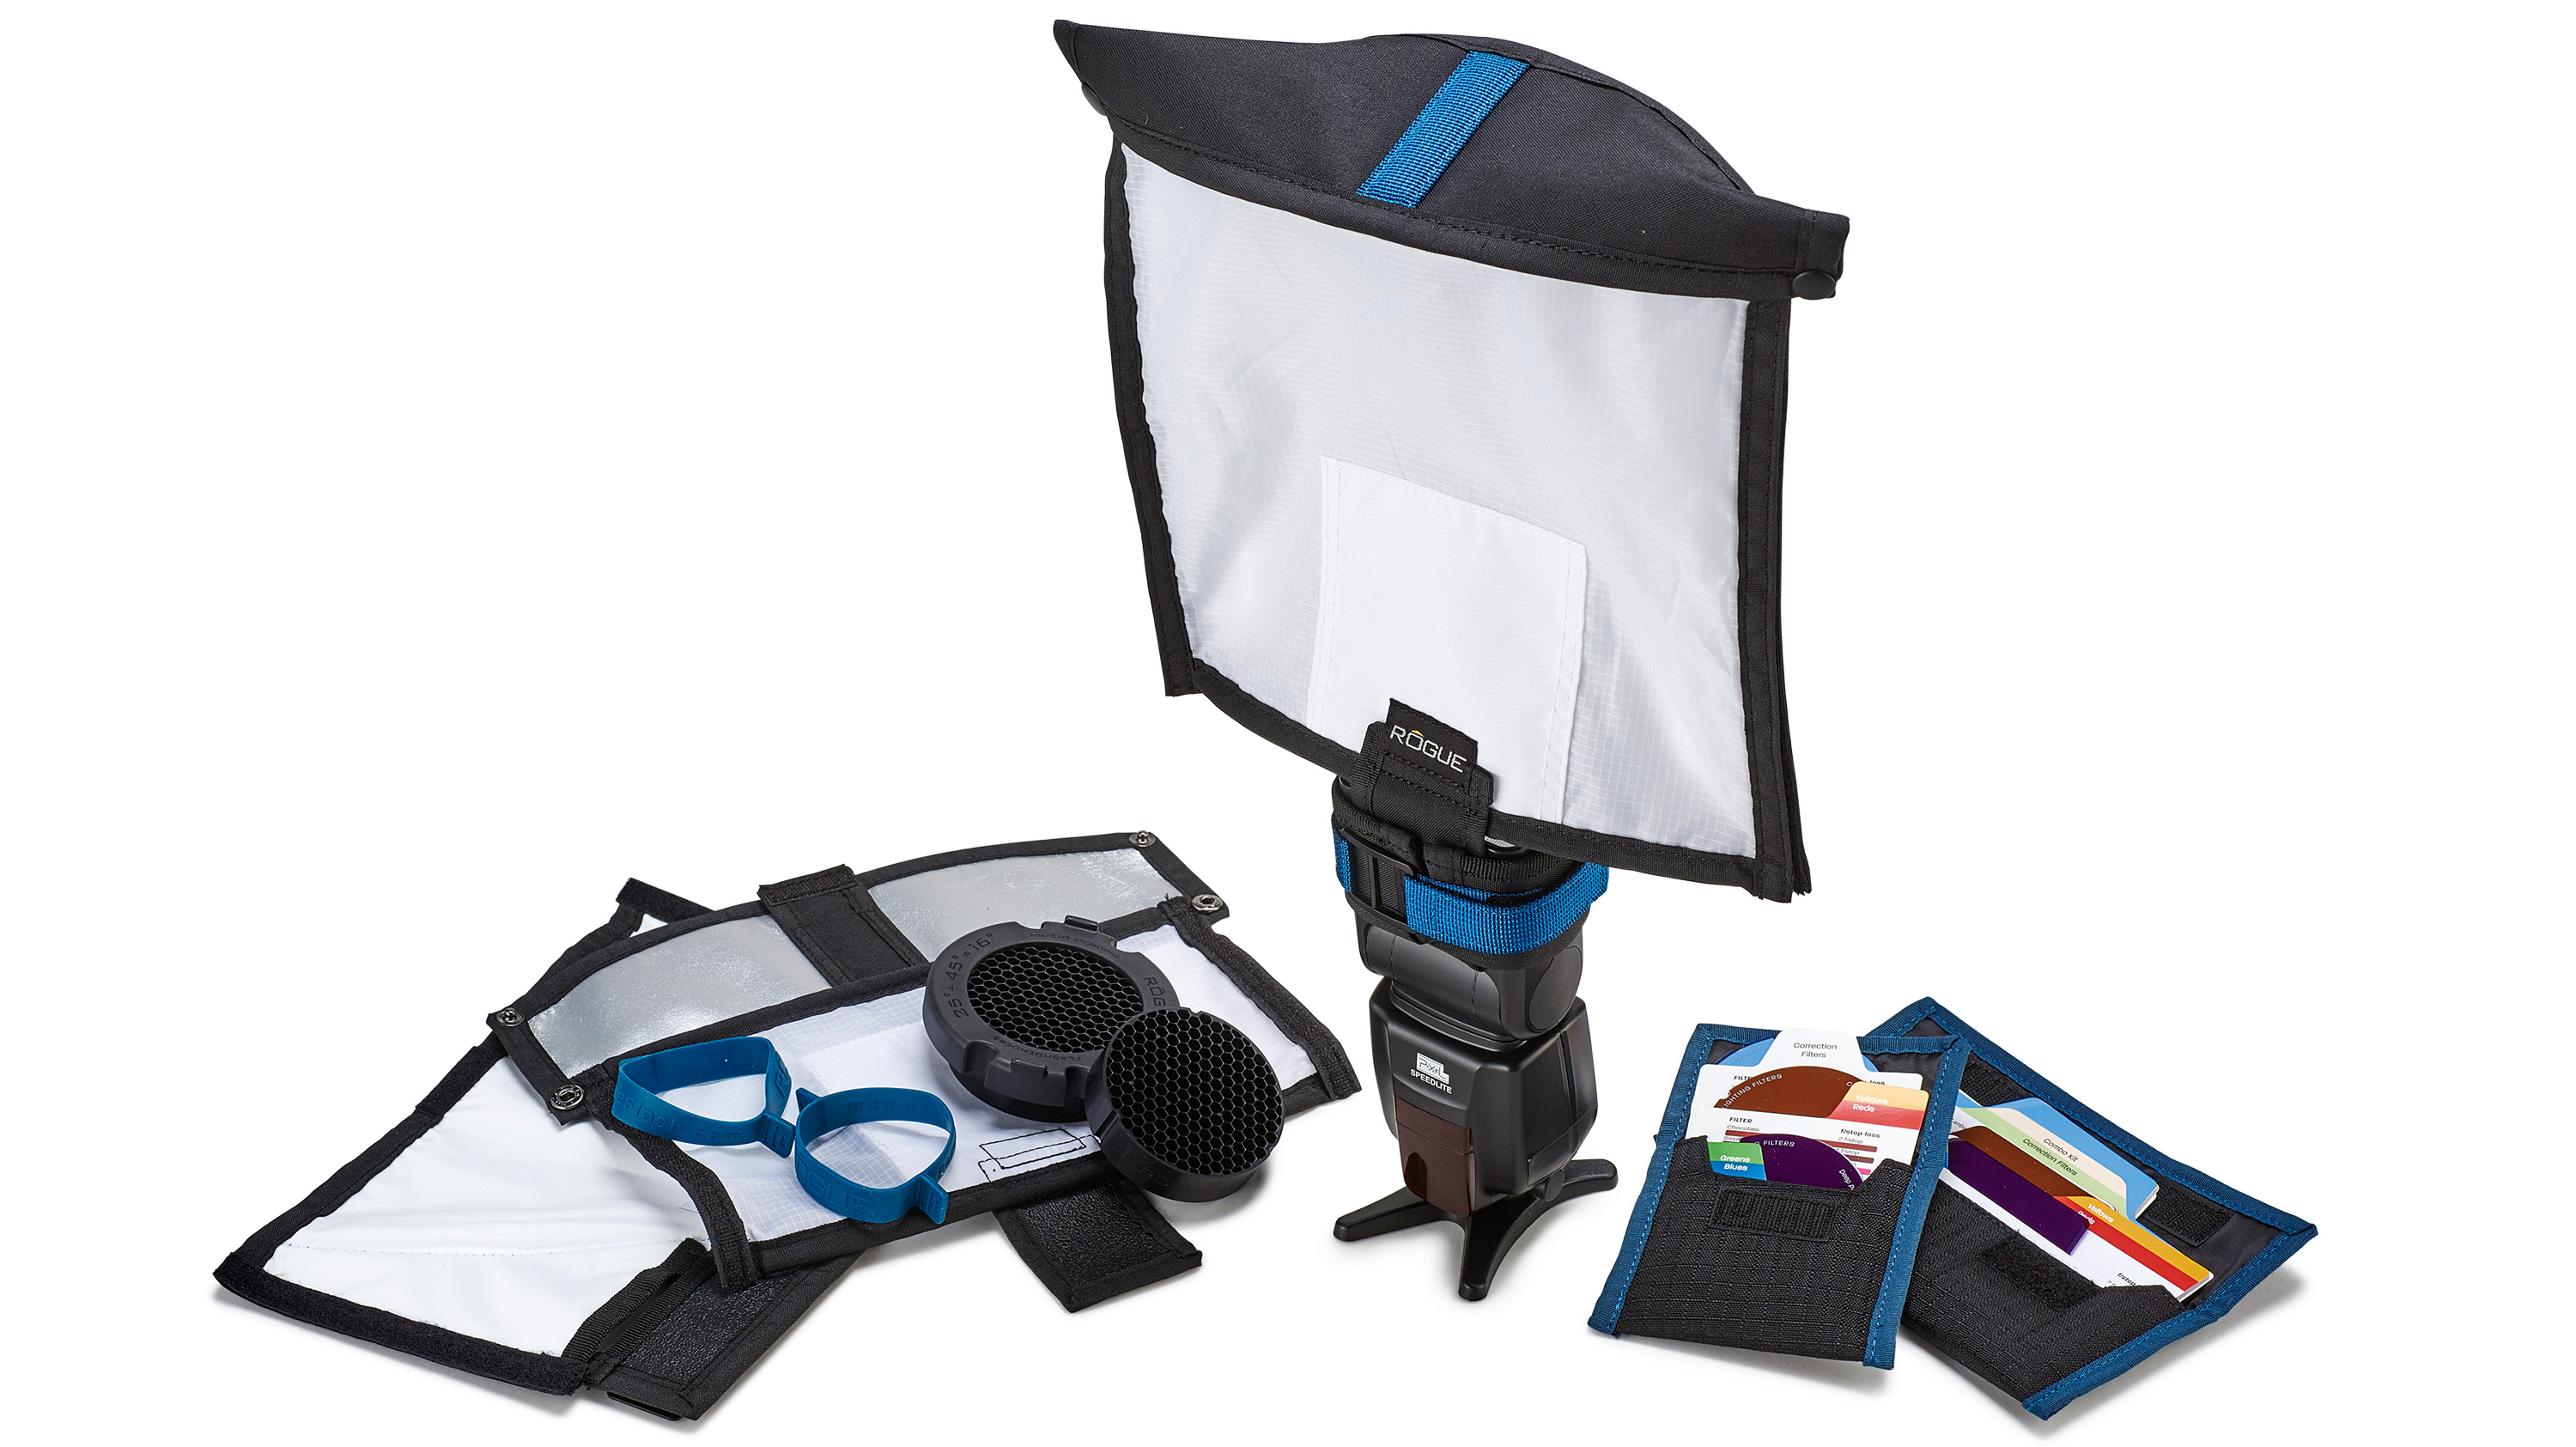 The best flash diffusers, softboxes and modifiers for your speedlight   Digital Camera World